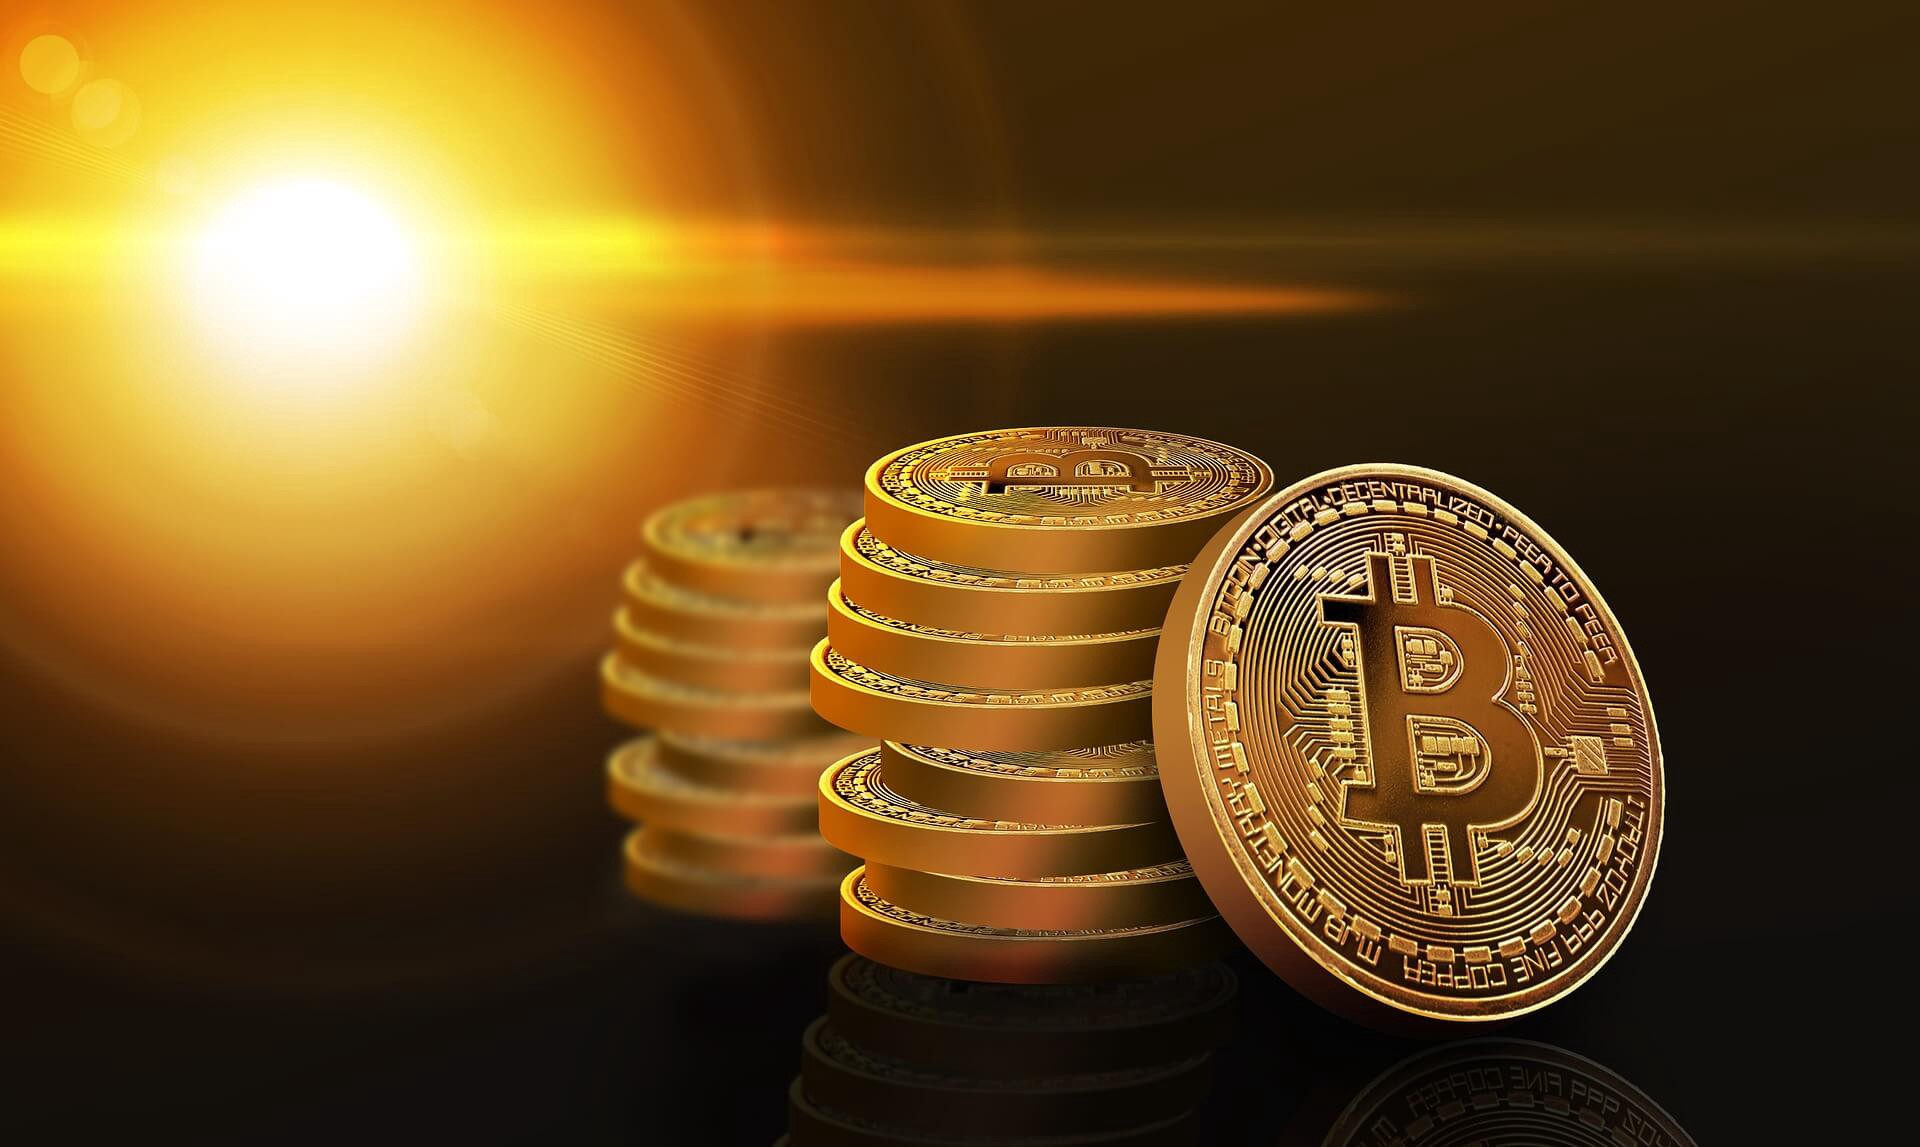 Former Bitcoin Hater, MicroStrategy Points the Way to Follow for Big Companies in the Future